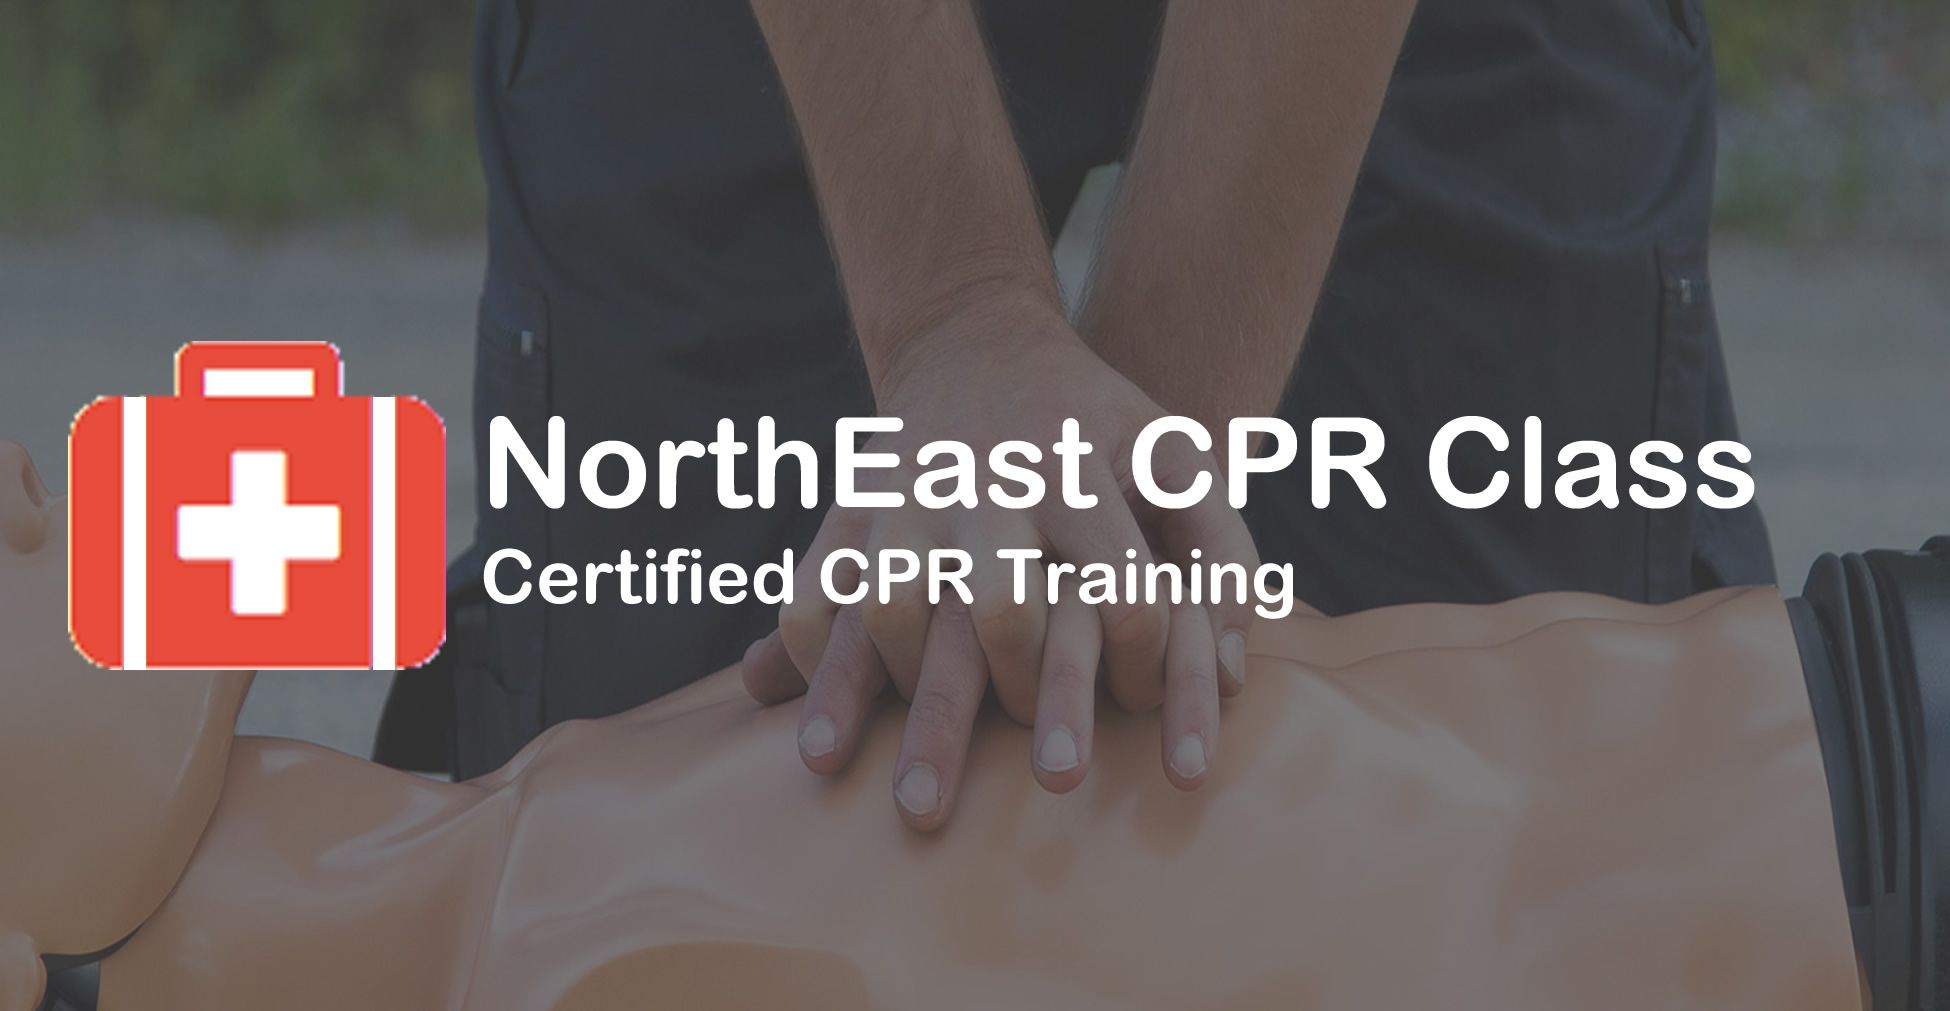 Pin by Northeast cpr class on Products you tagged Cpr